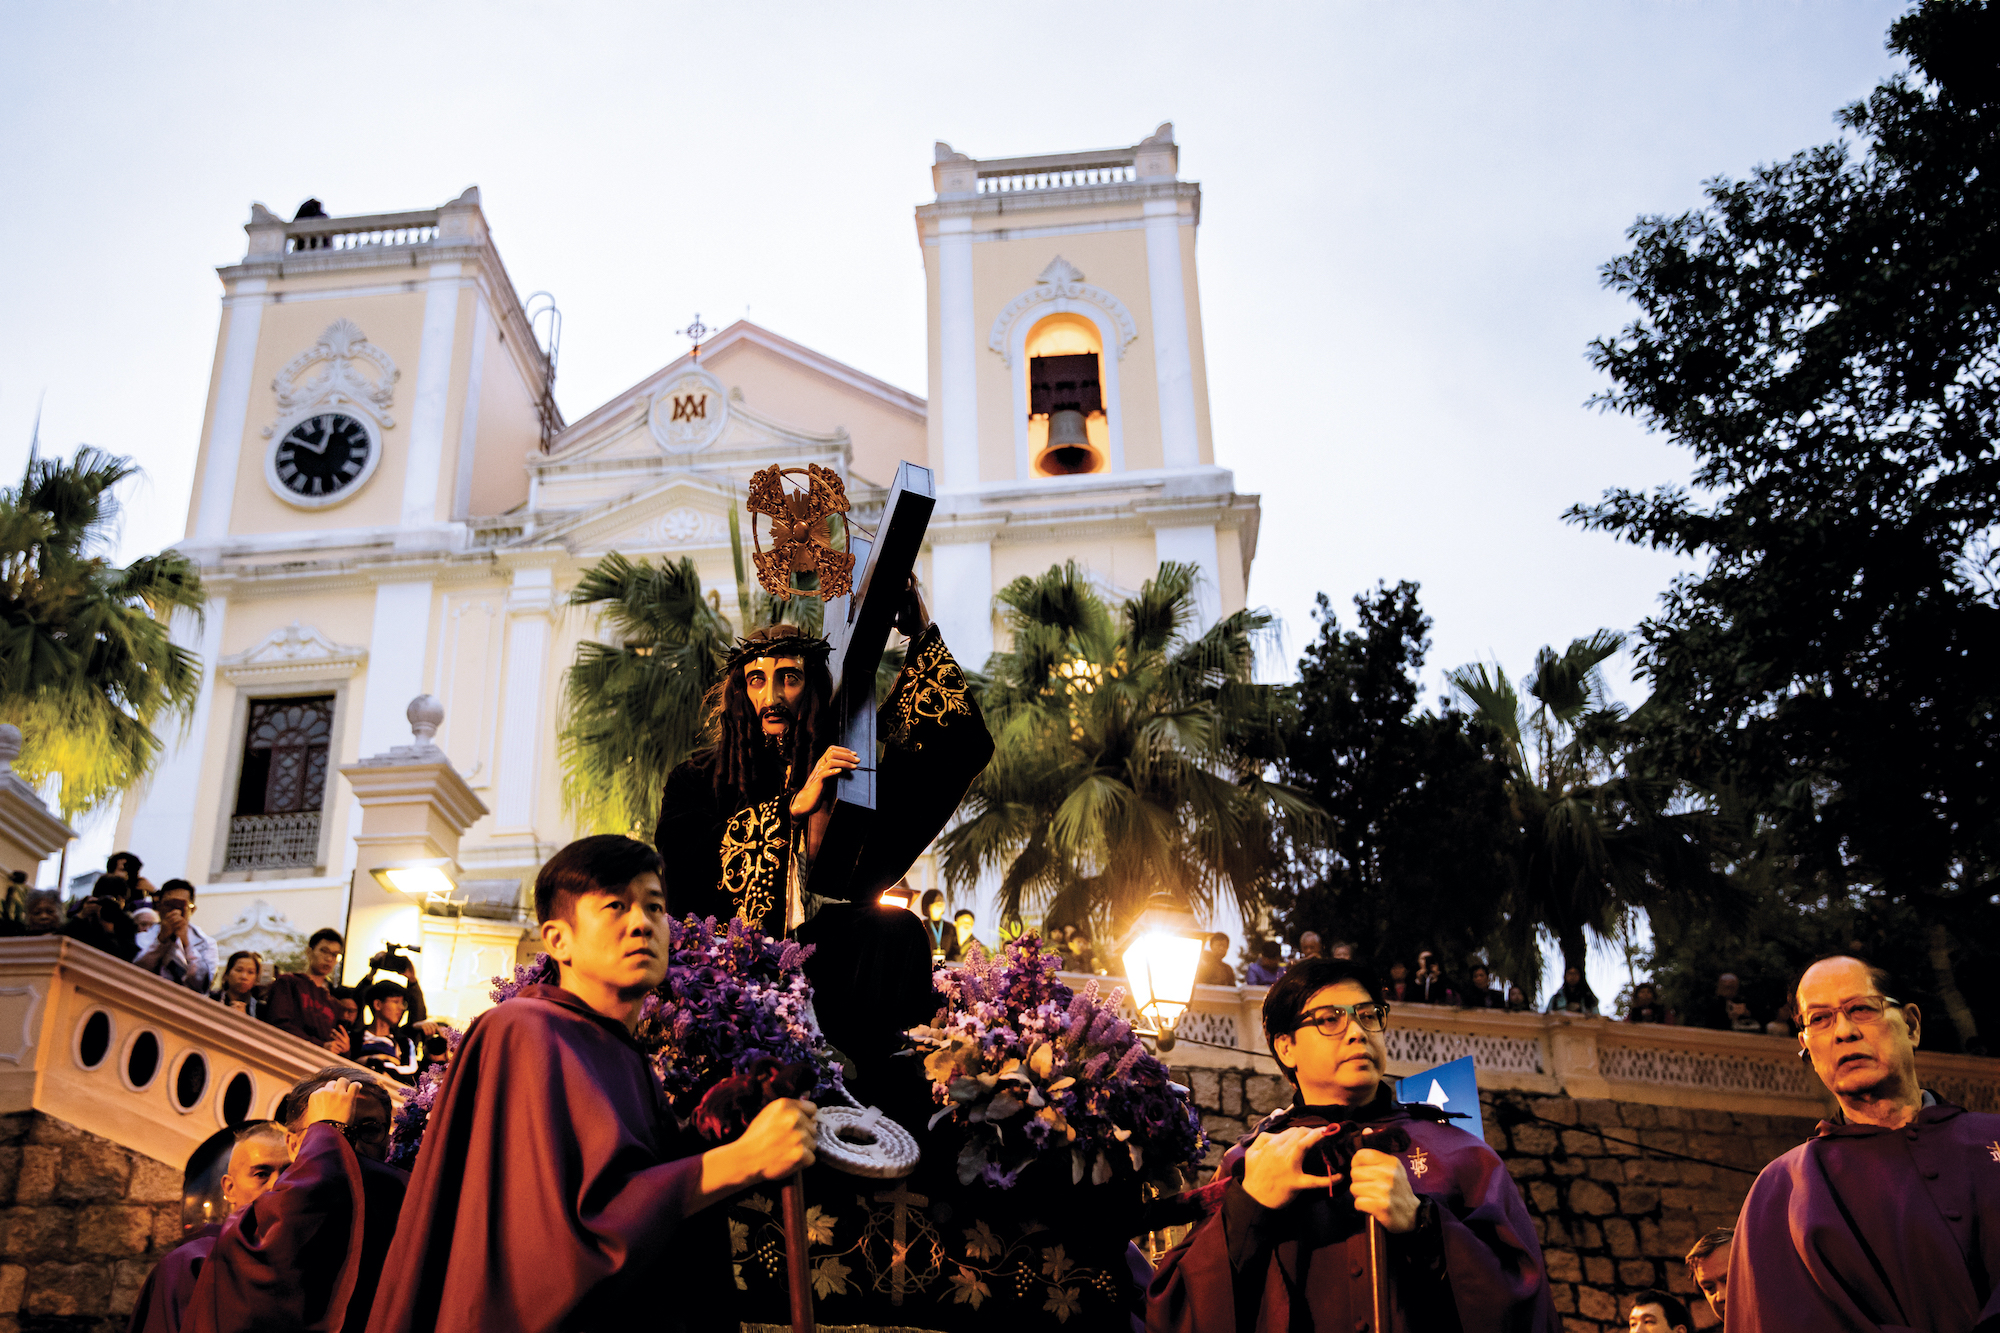 Procession of the Passion of Our Lord, the God Jesus | Photo by Eduardo Martins